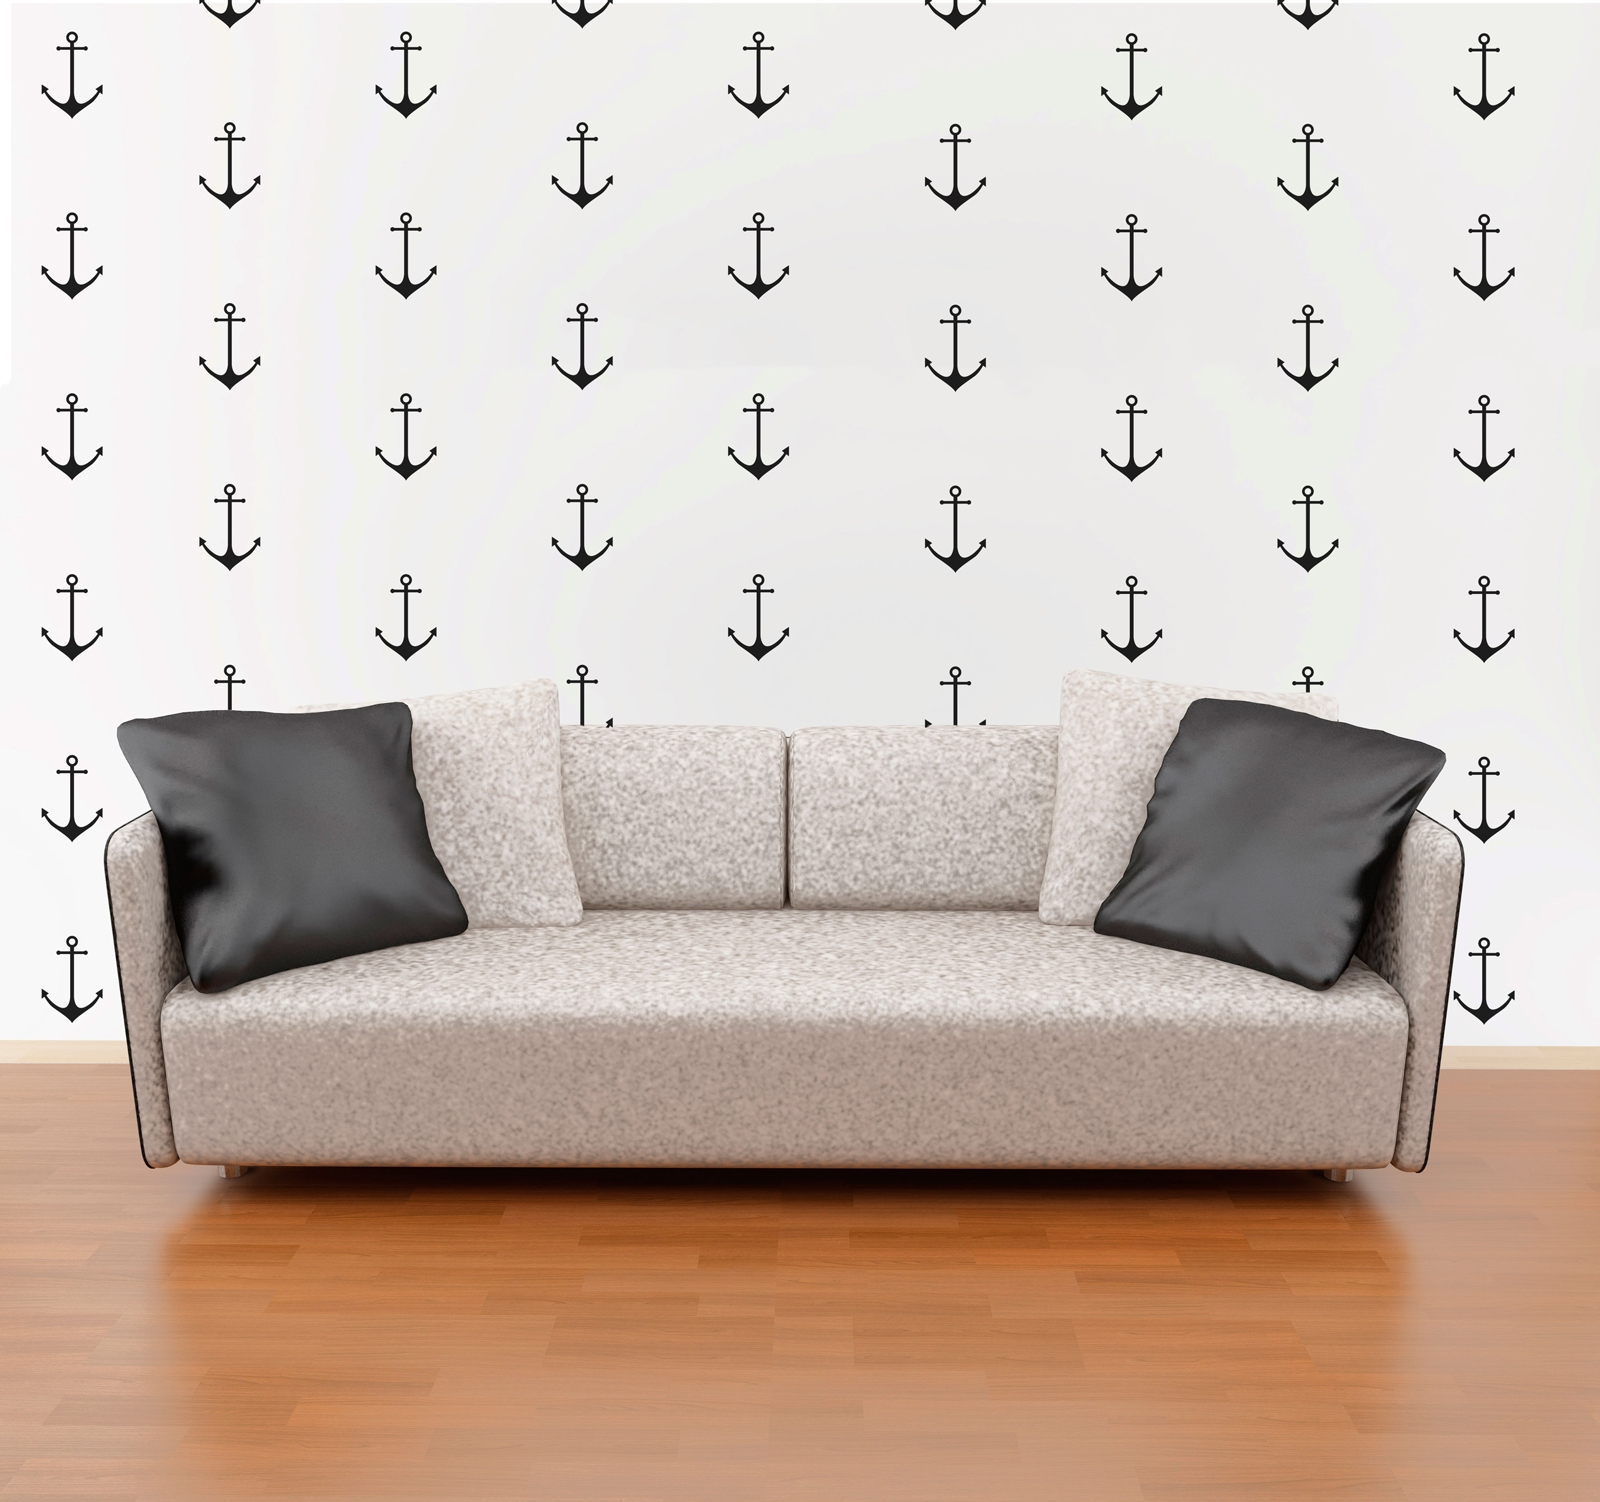 Anchor Wall Pattern Decals Nautical Boat Nursery Decor Wallpaper Sticker